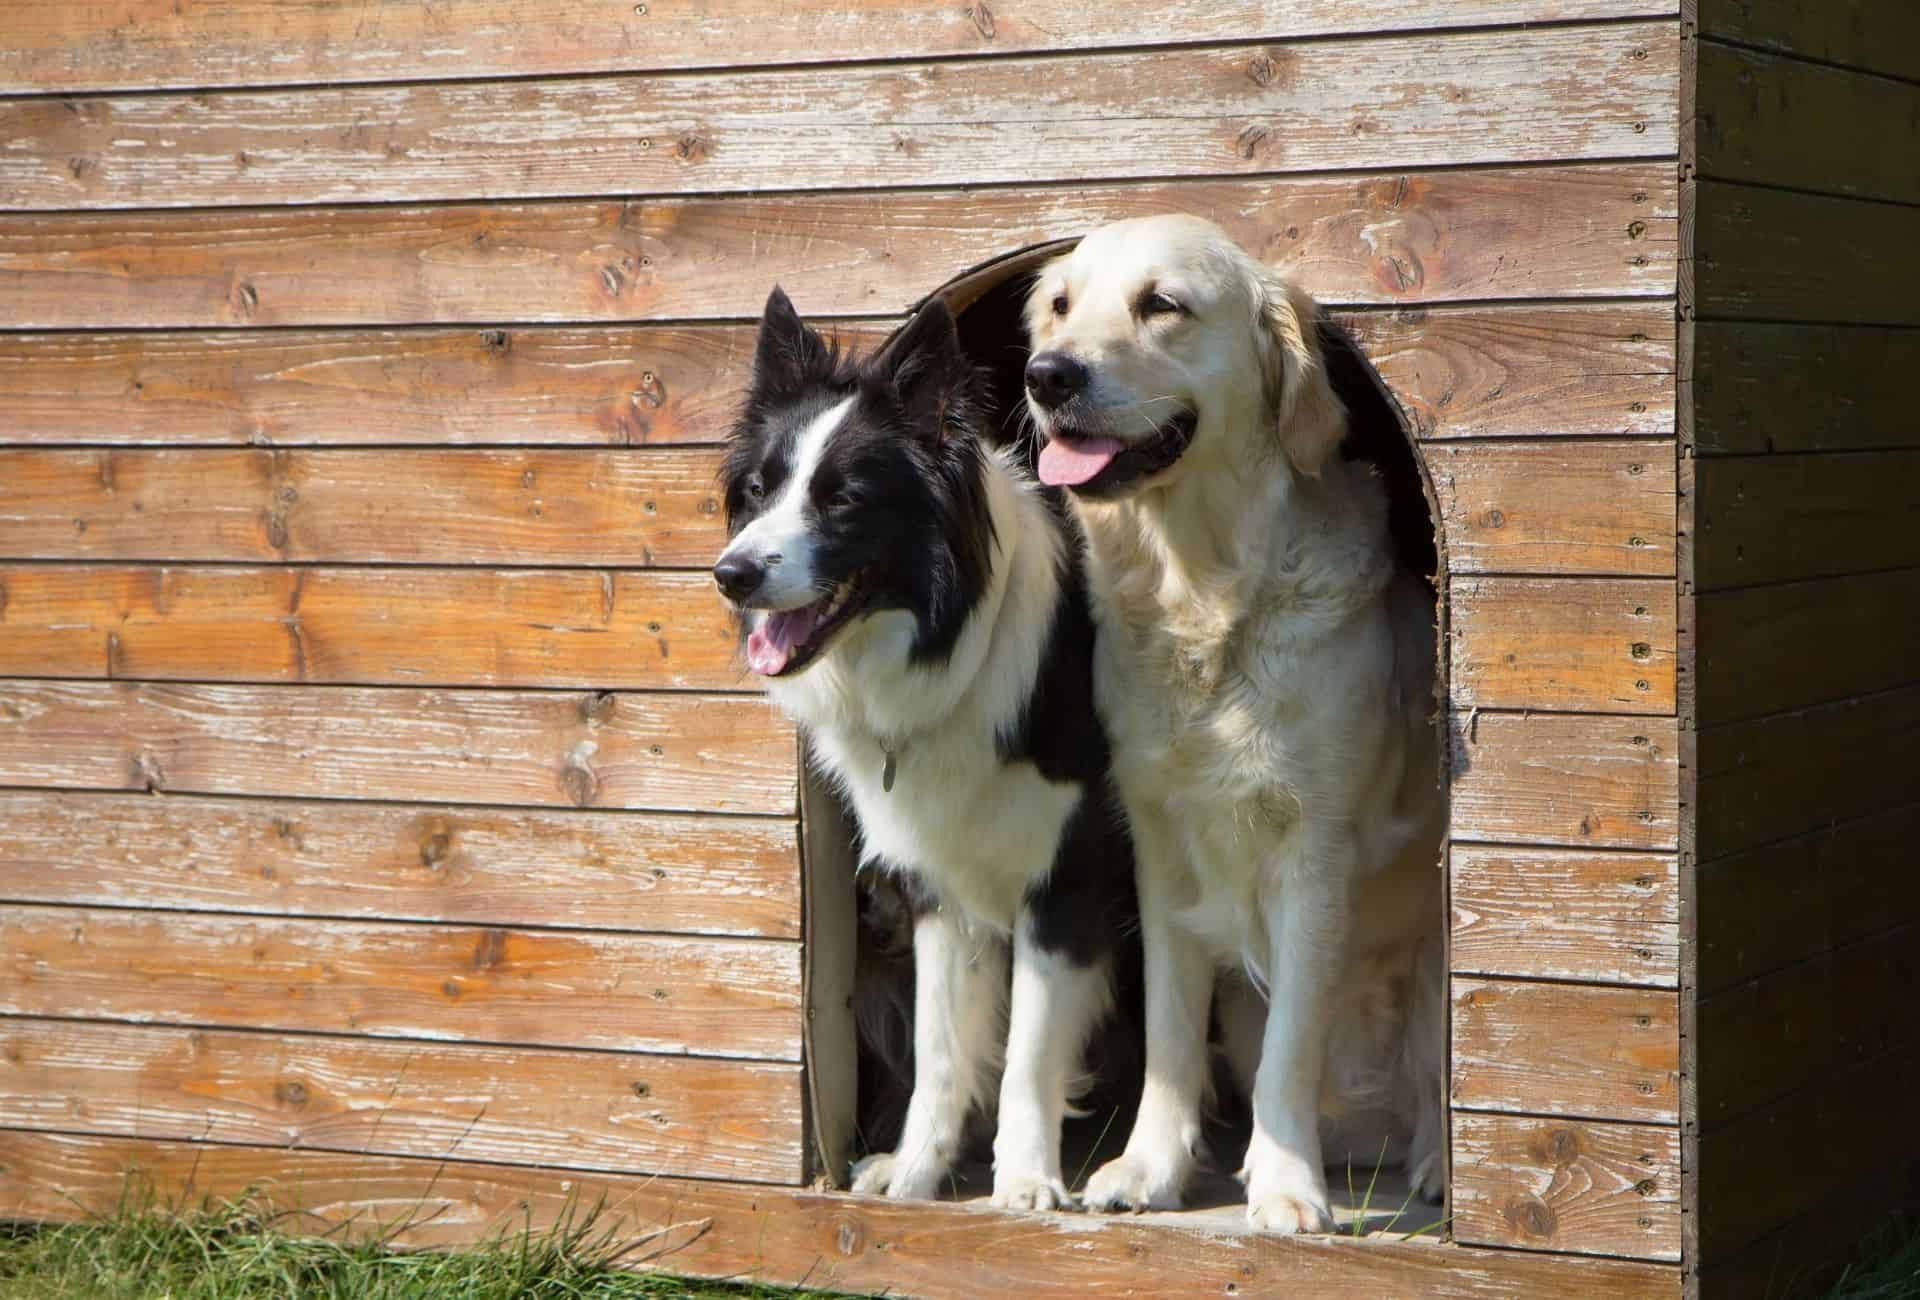 Two dogs in a boarding kennel